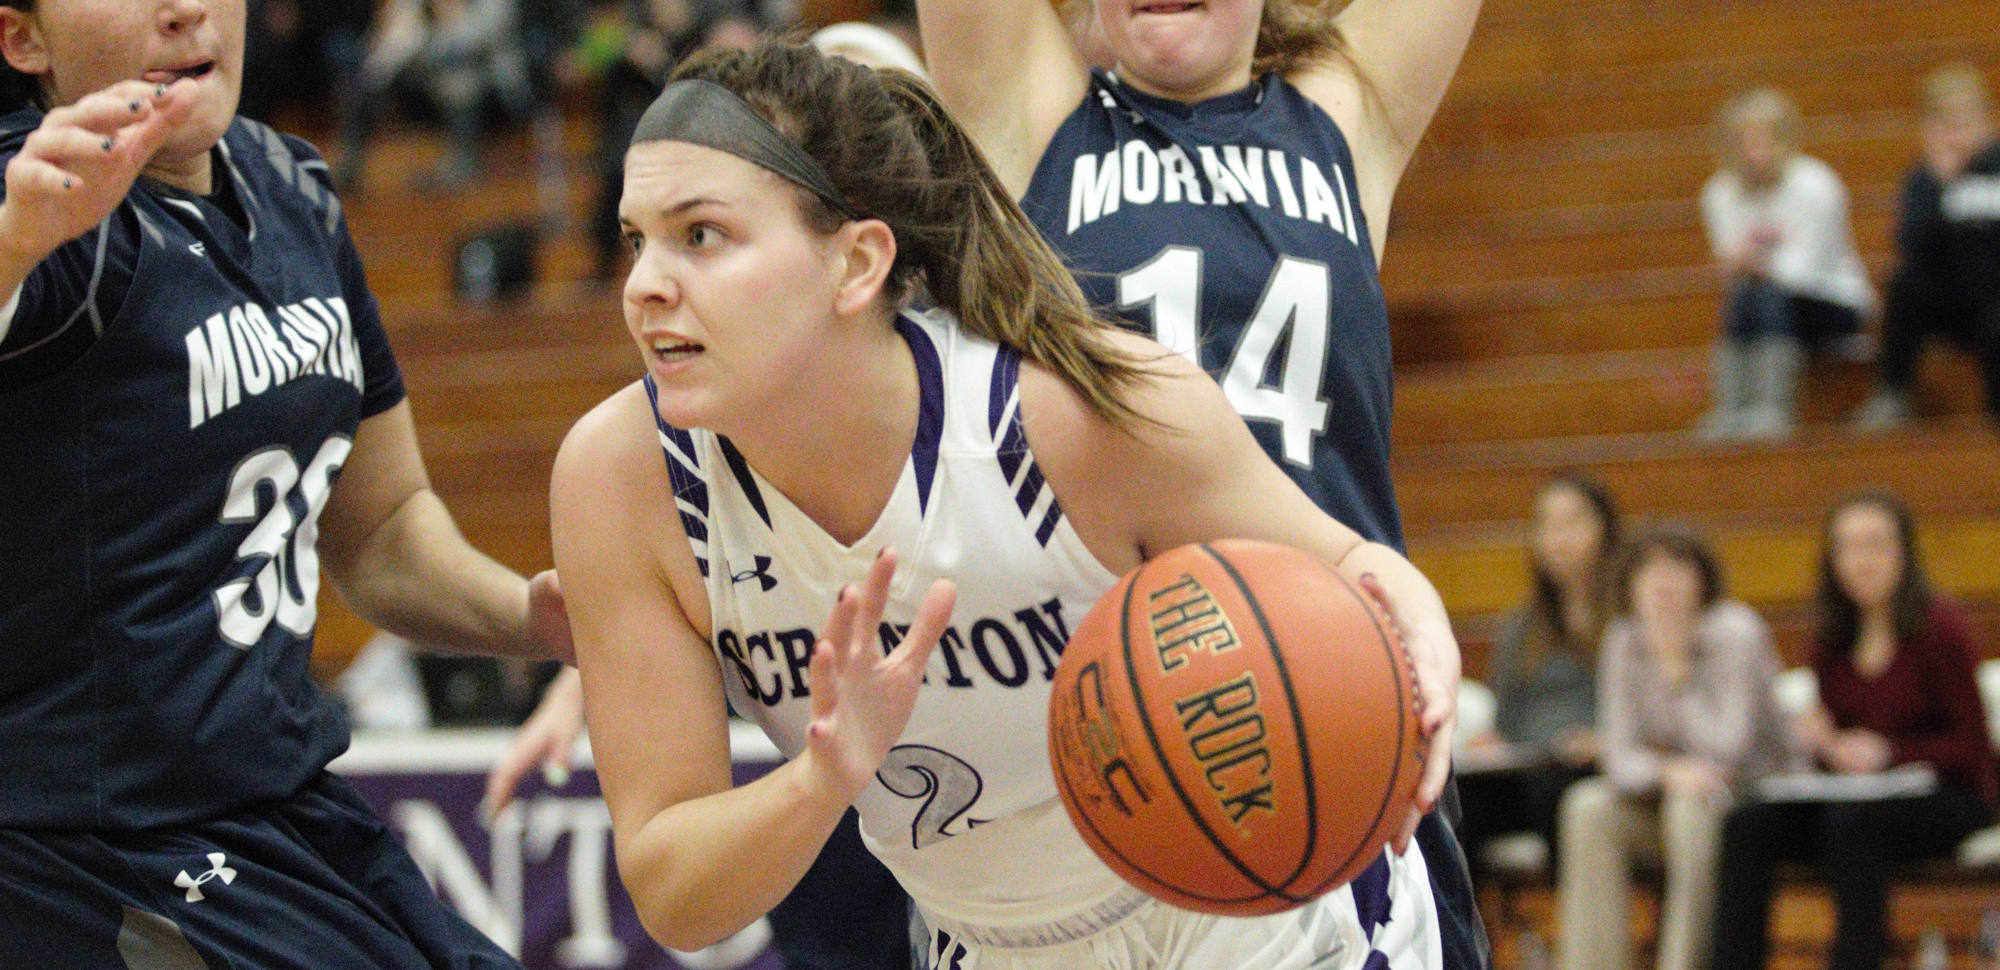 Emily Sheehan led Scranton with a season-high 16 points in the Lady Royals' victory over Susquehanna on Wednesday night.